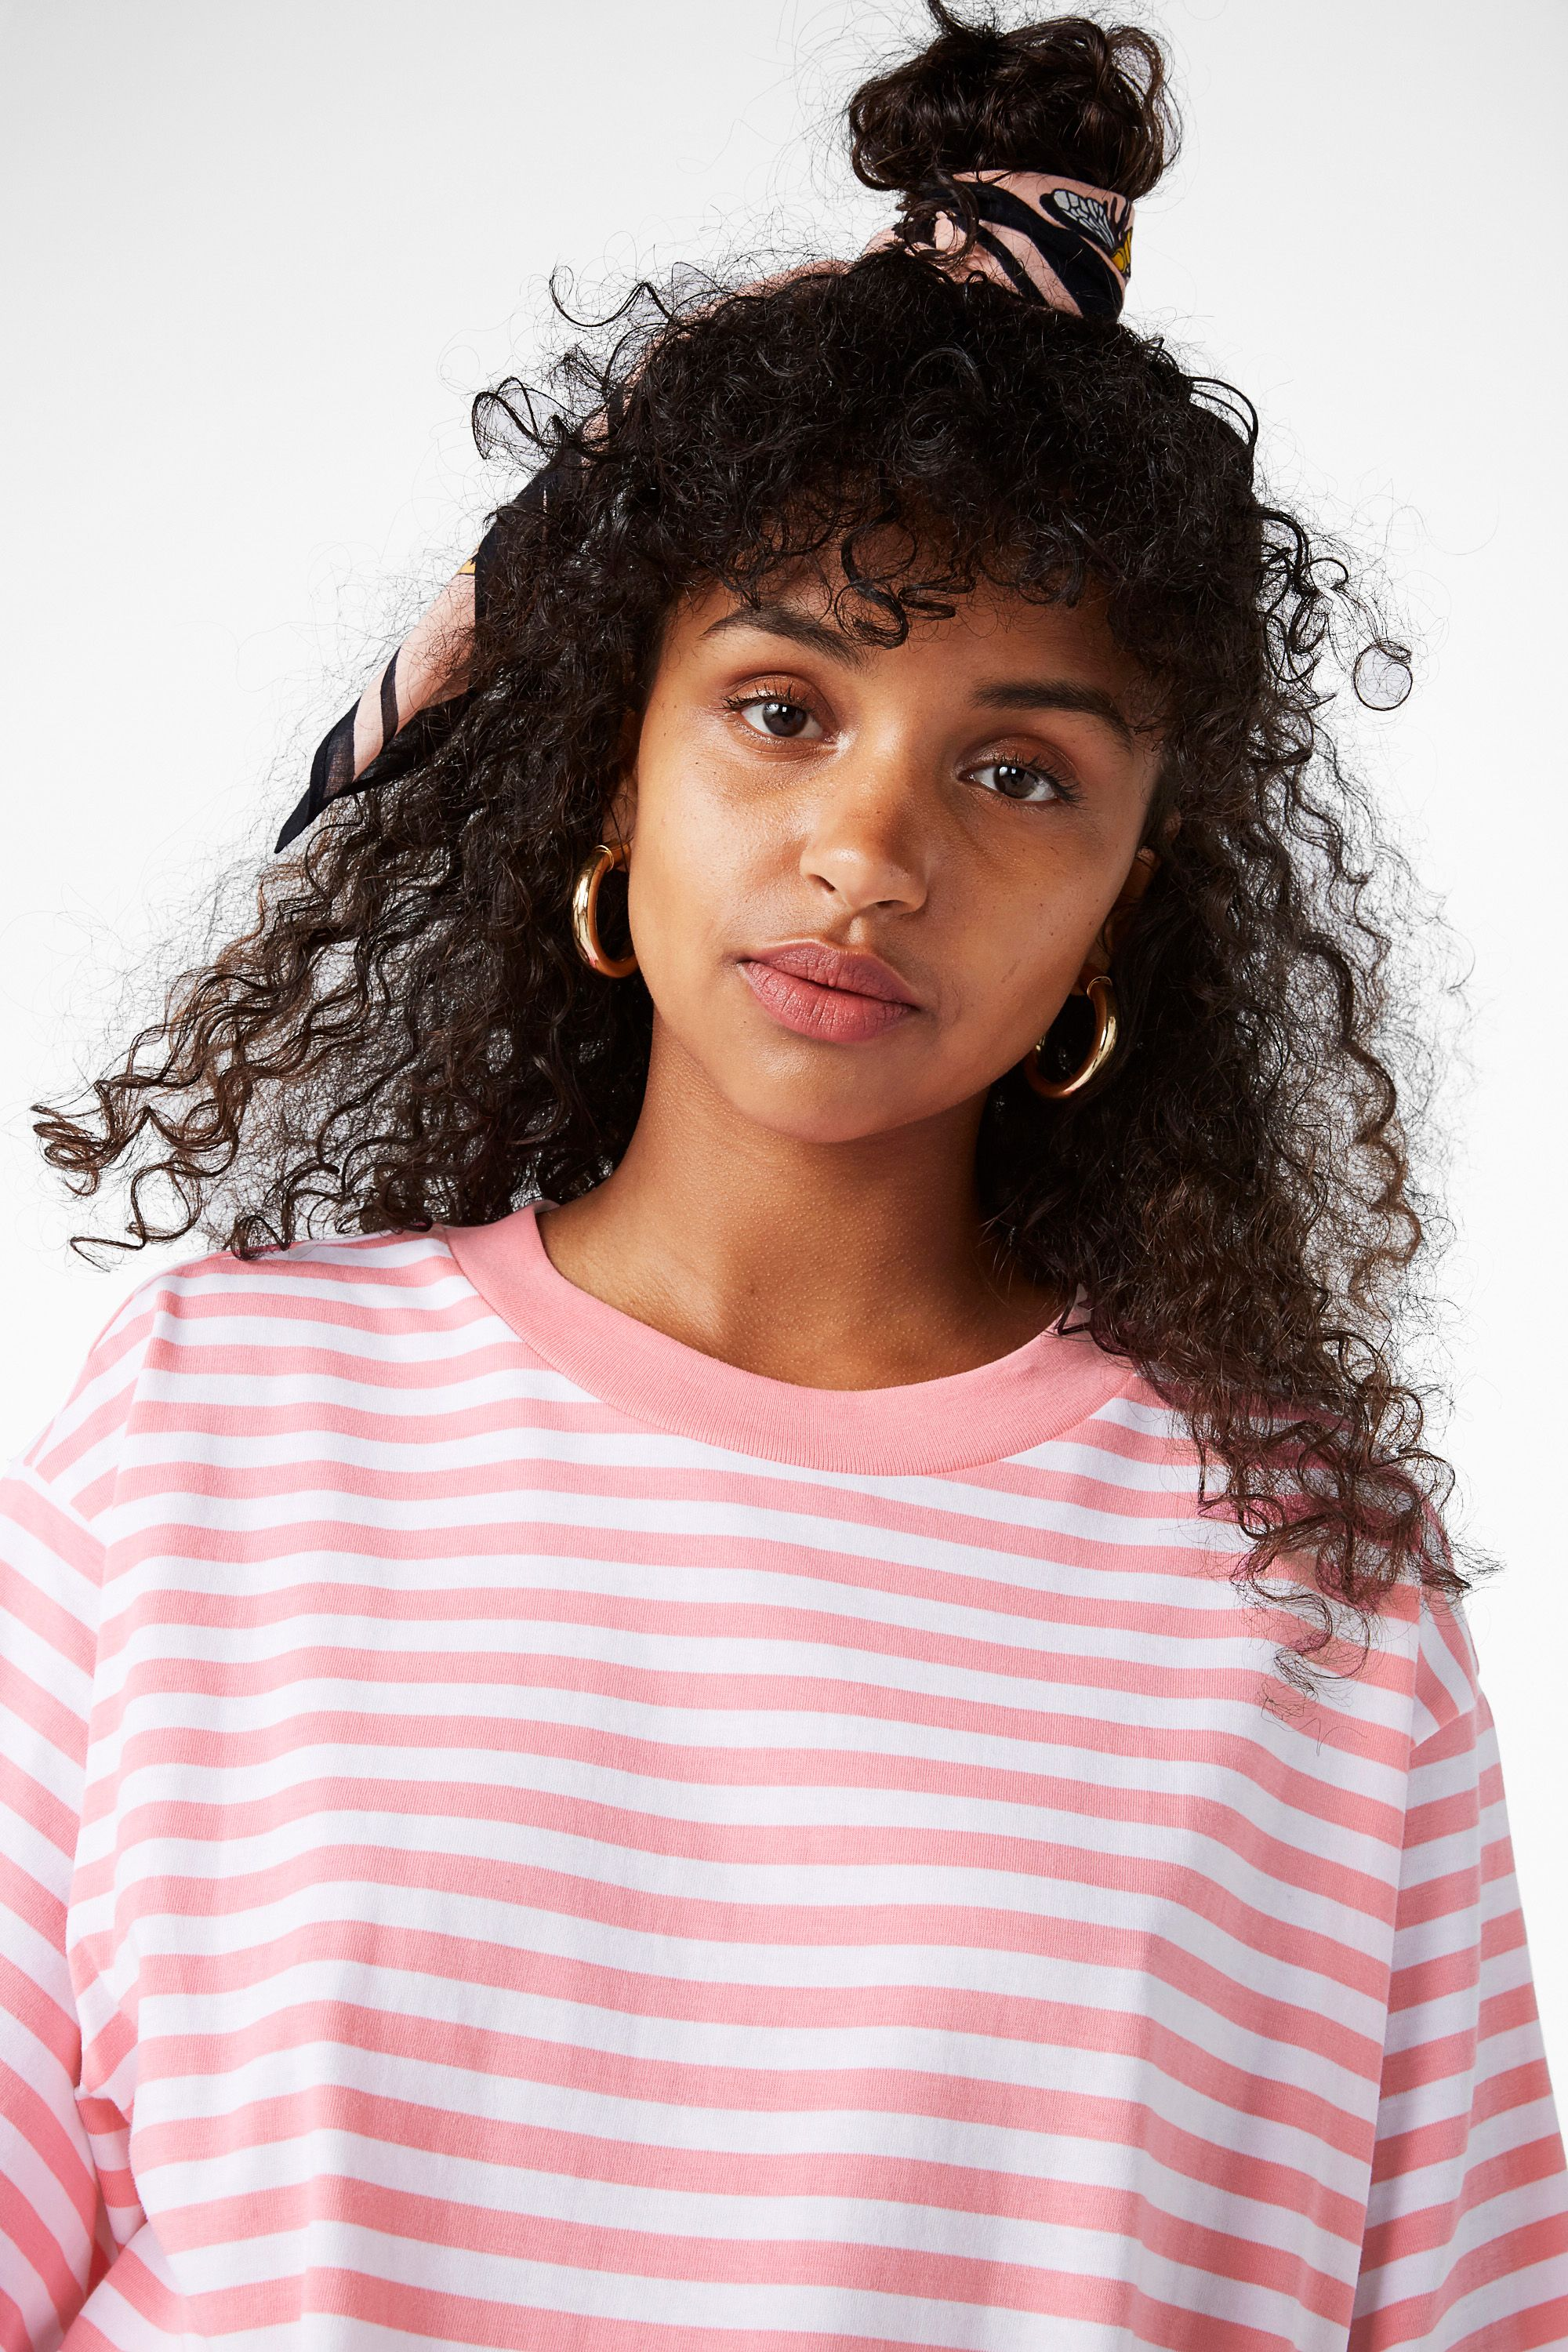 Monki image of oversized cotton tee in pink hair style